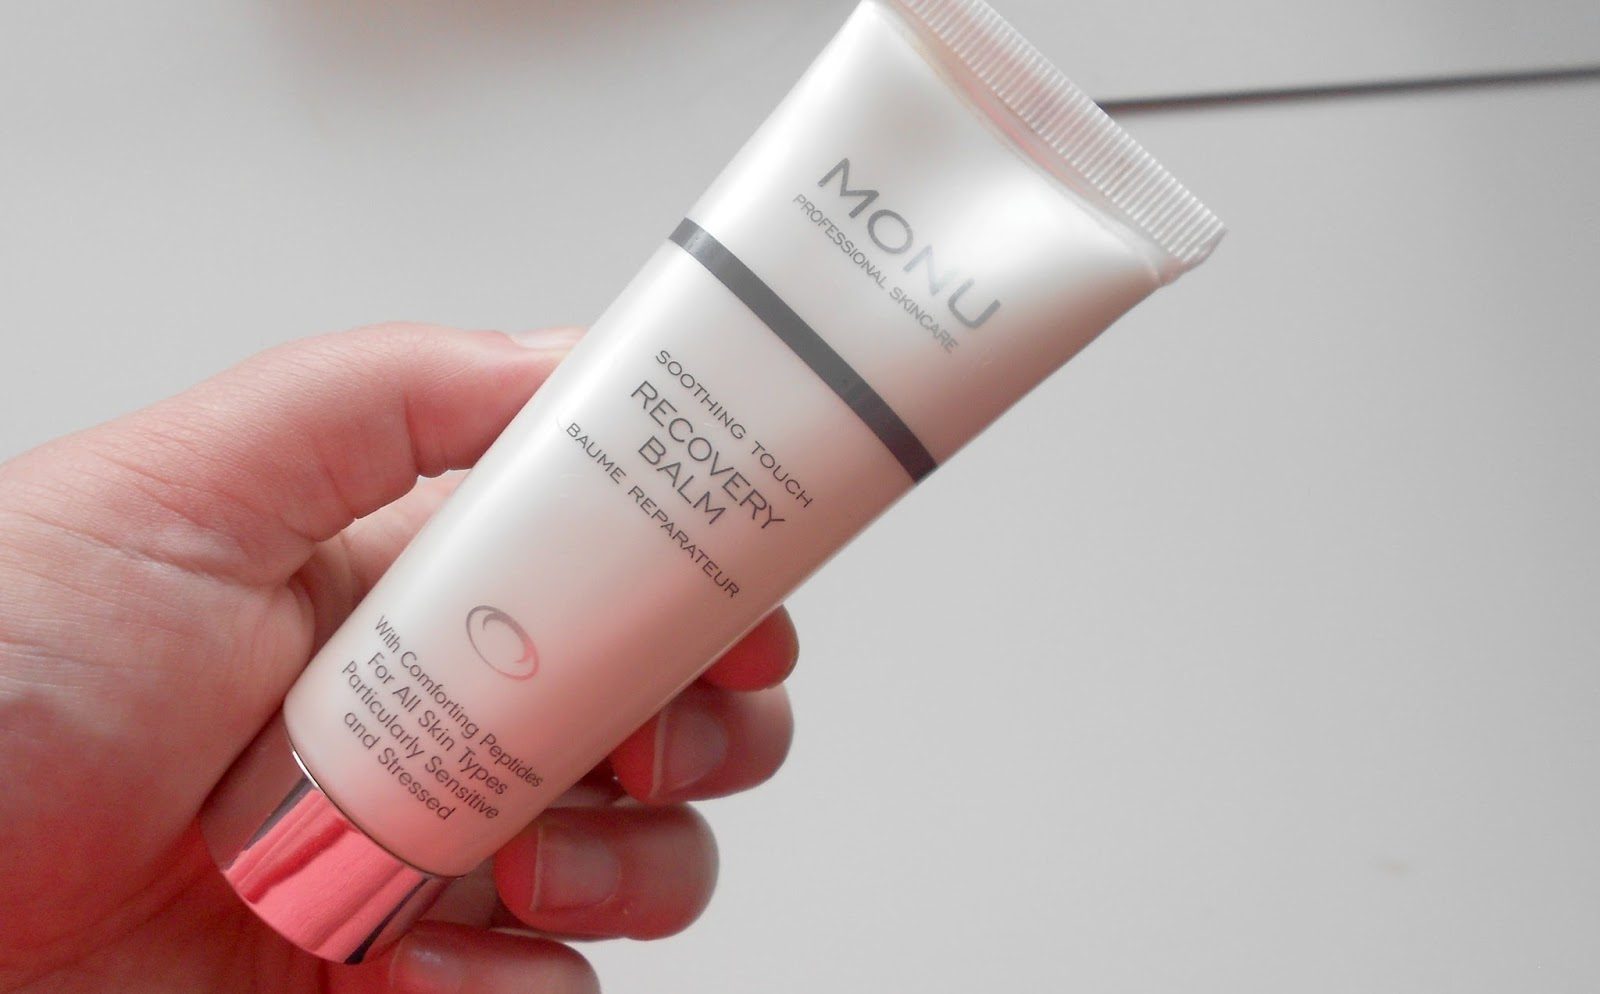 monu soothing touch recovery balm review skincare sensitive skin